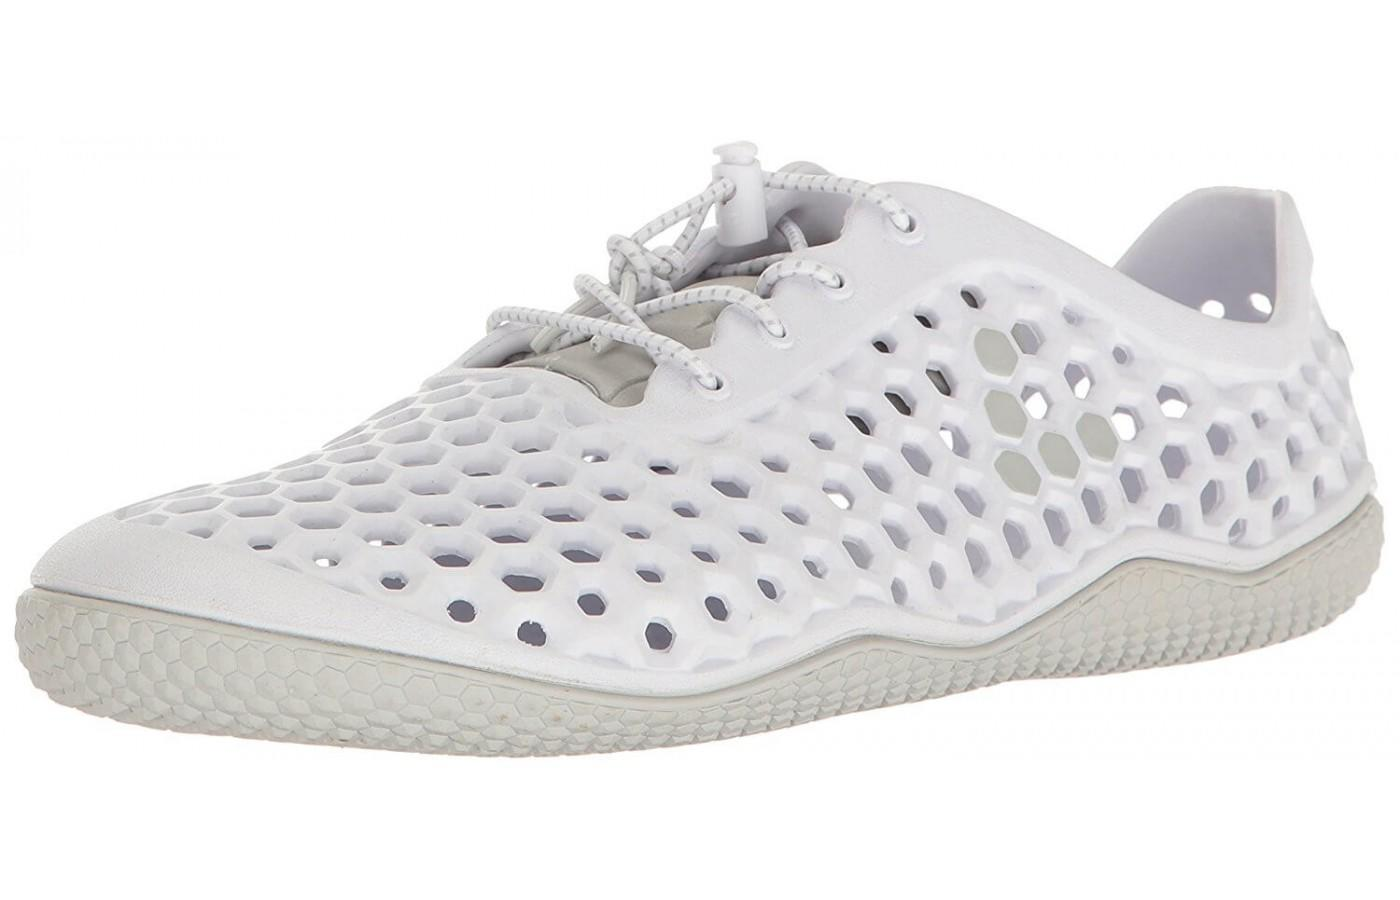 the vivobarefoot ultra 3 is a unique barefoot shoe ...